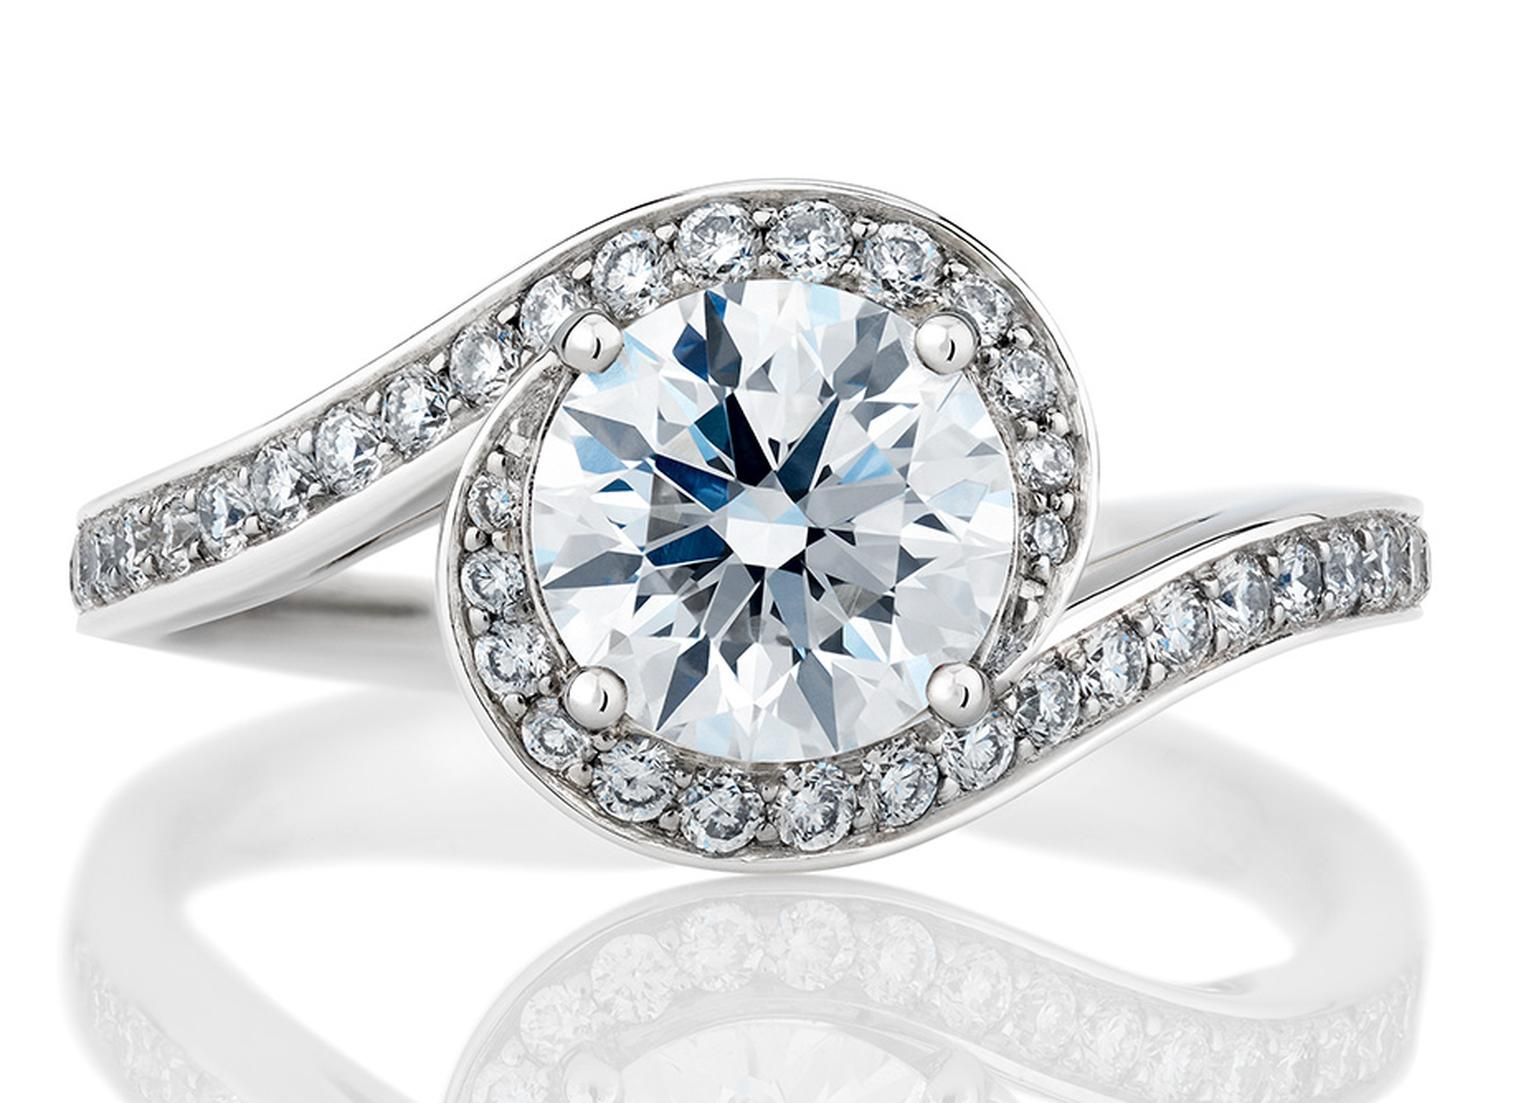 De Beers' Caress solitaire engagement ring incorporates a curved diamond pave´ that appears to embrace the central diamond